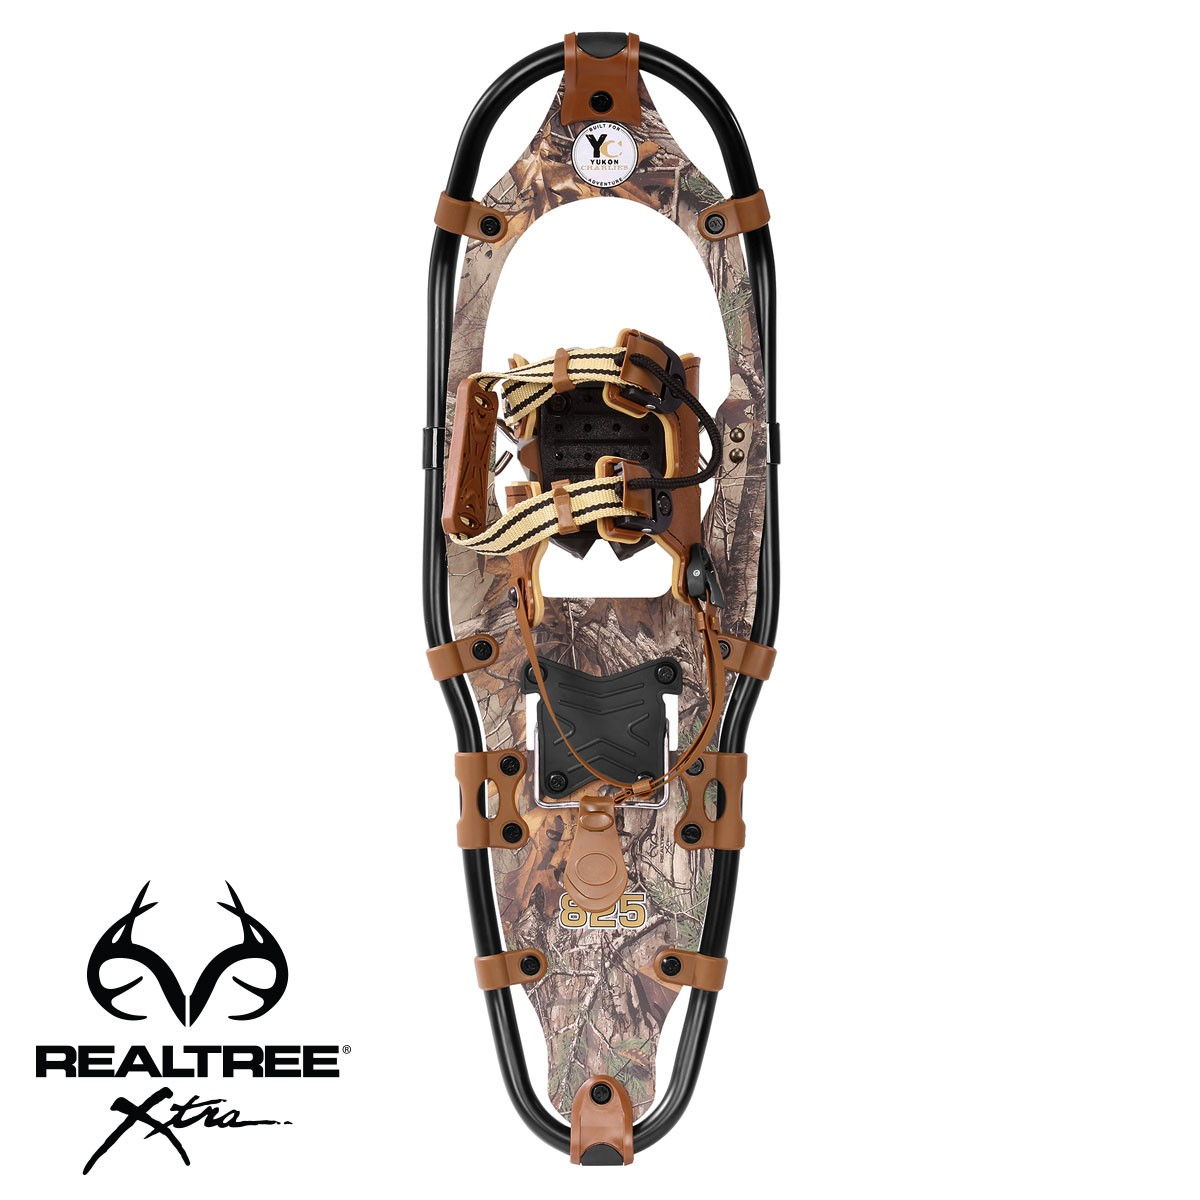 Yukon Charlie's REALTREE Xtra Aluminum Snowshoes 9x30 (up to 250lbs) Wood Camo by